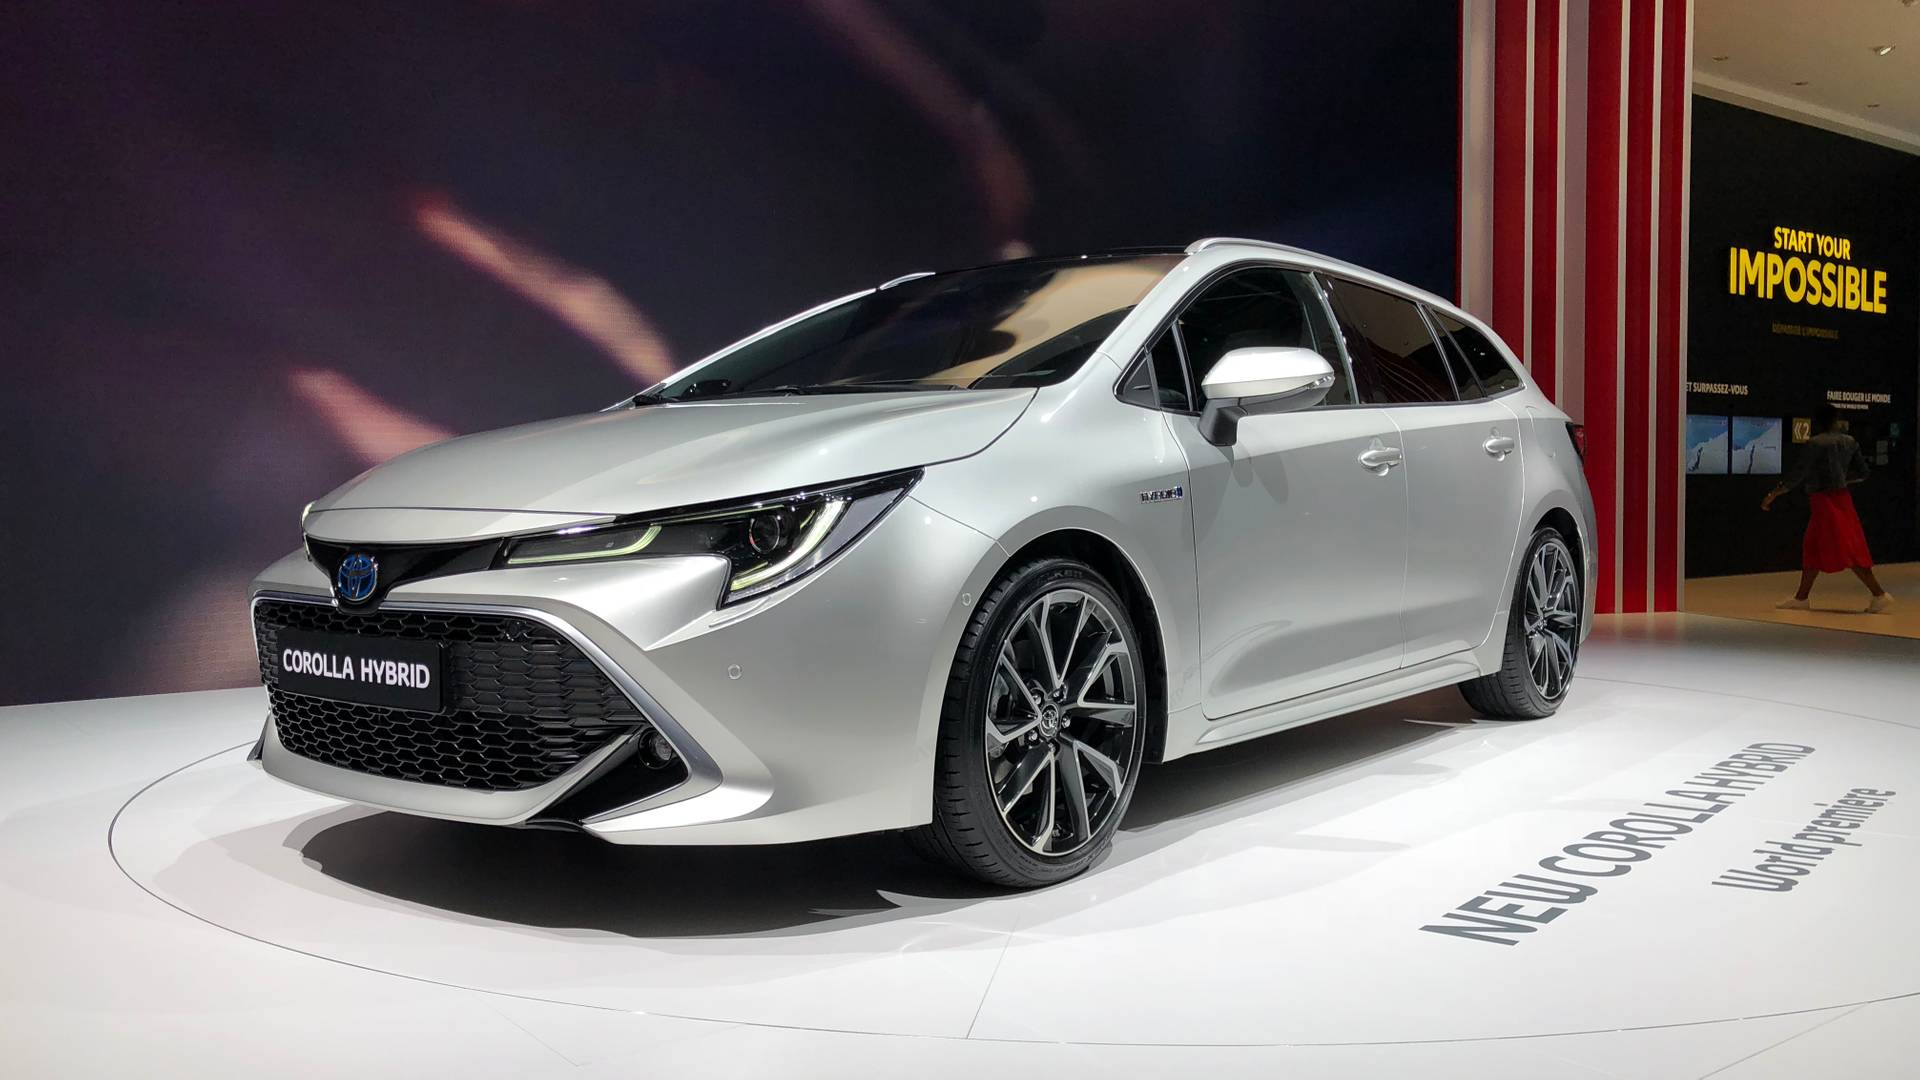 2019 Toyota Corolla Touring Sports Revealed With Massive Boot